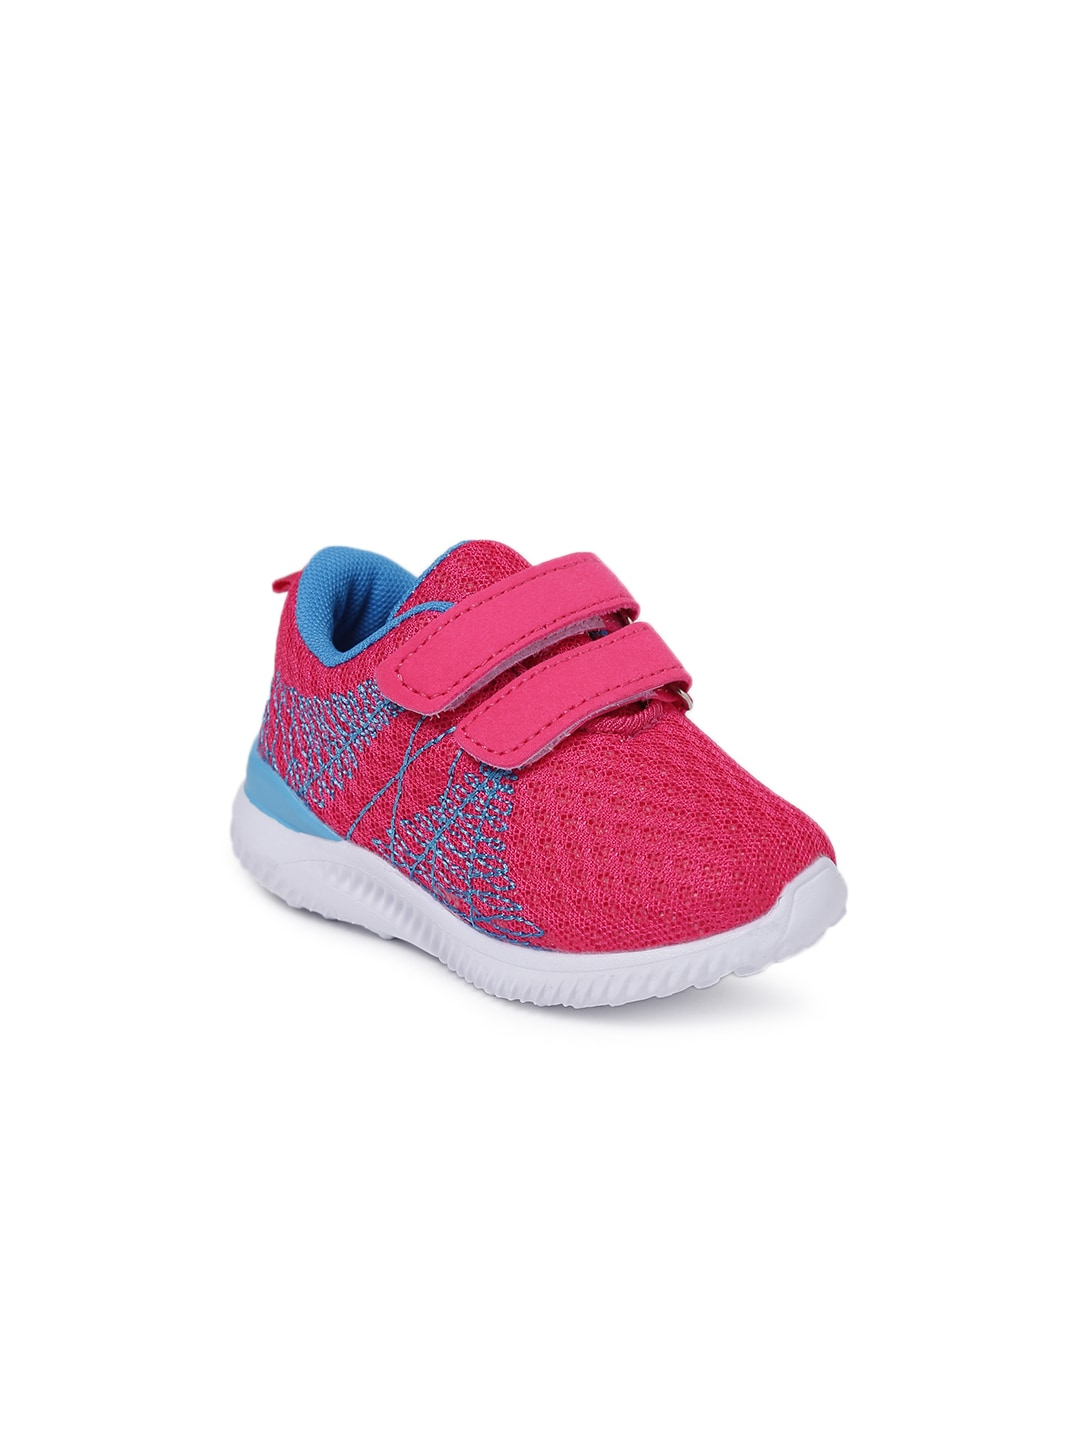 66b502144782 Pink Sandal Casual Shoes Flats - Buy Pink Sandal Casual Shoes Flats online  in India